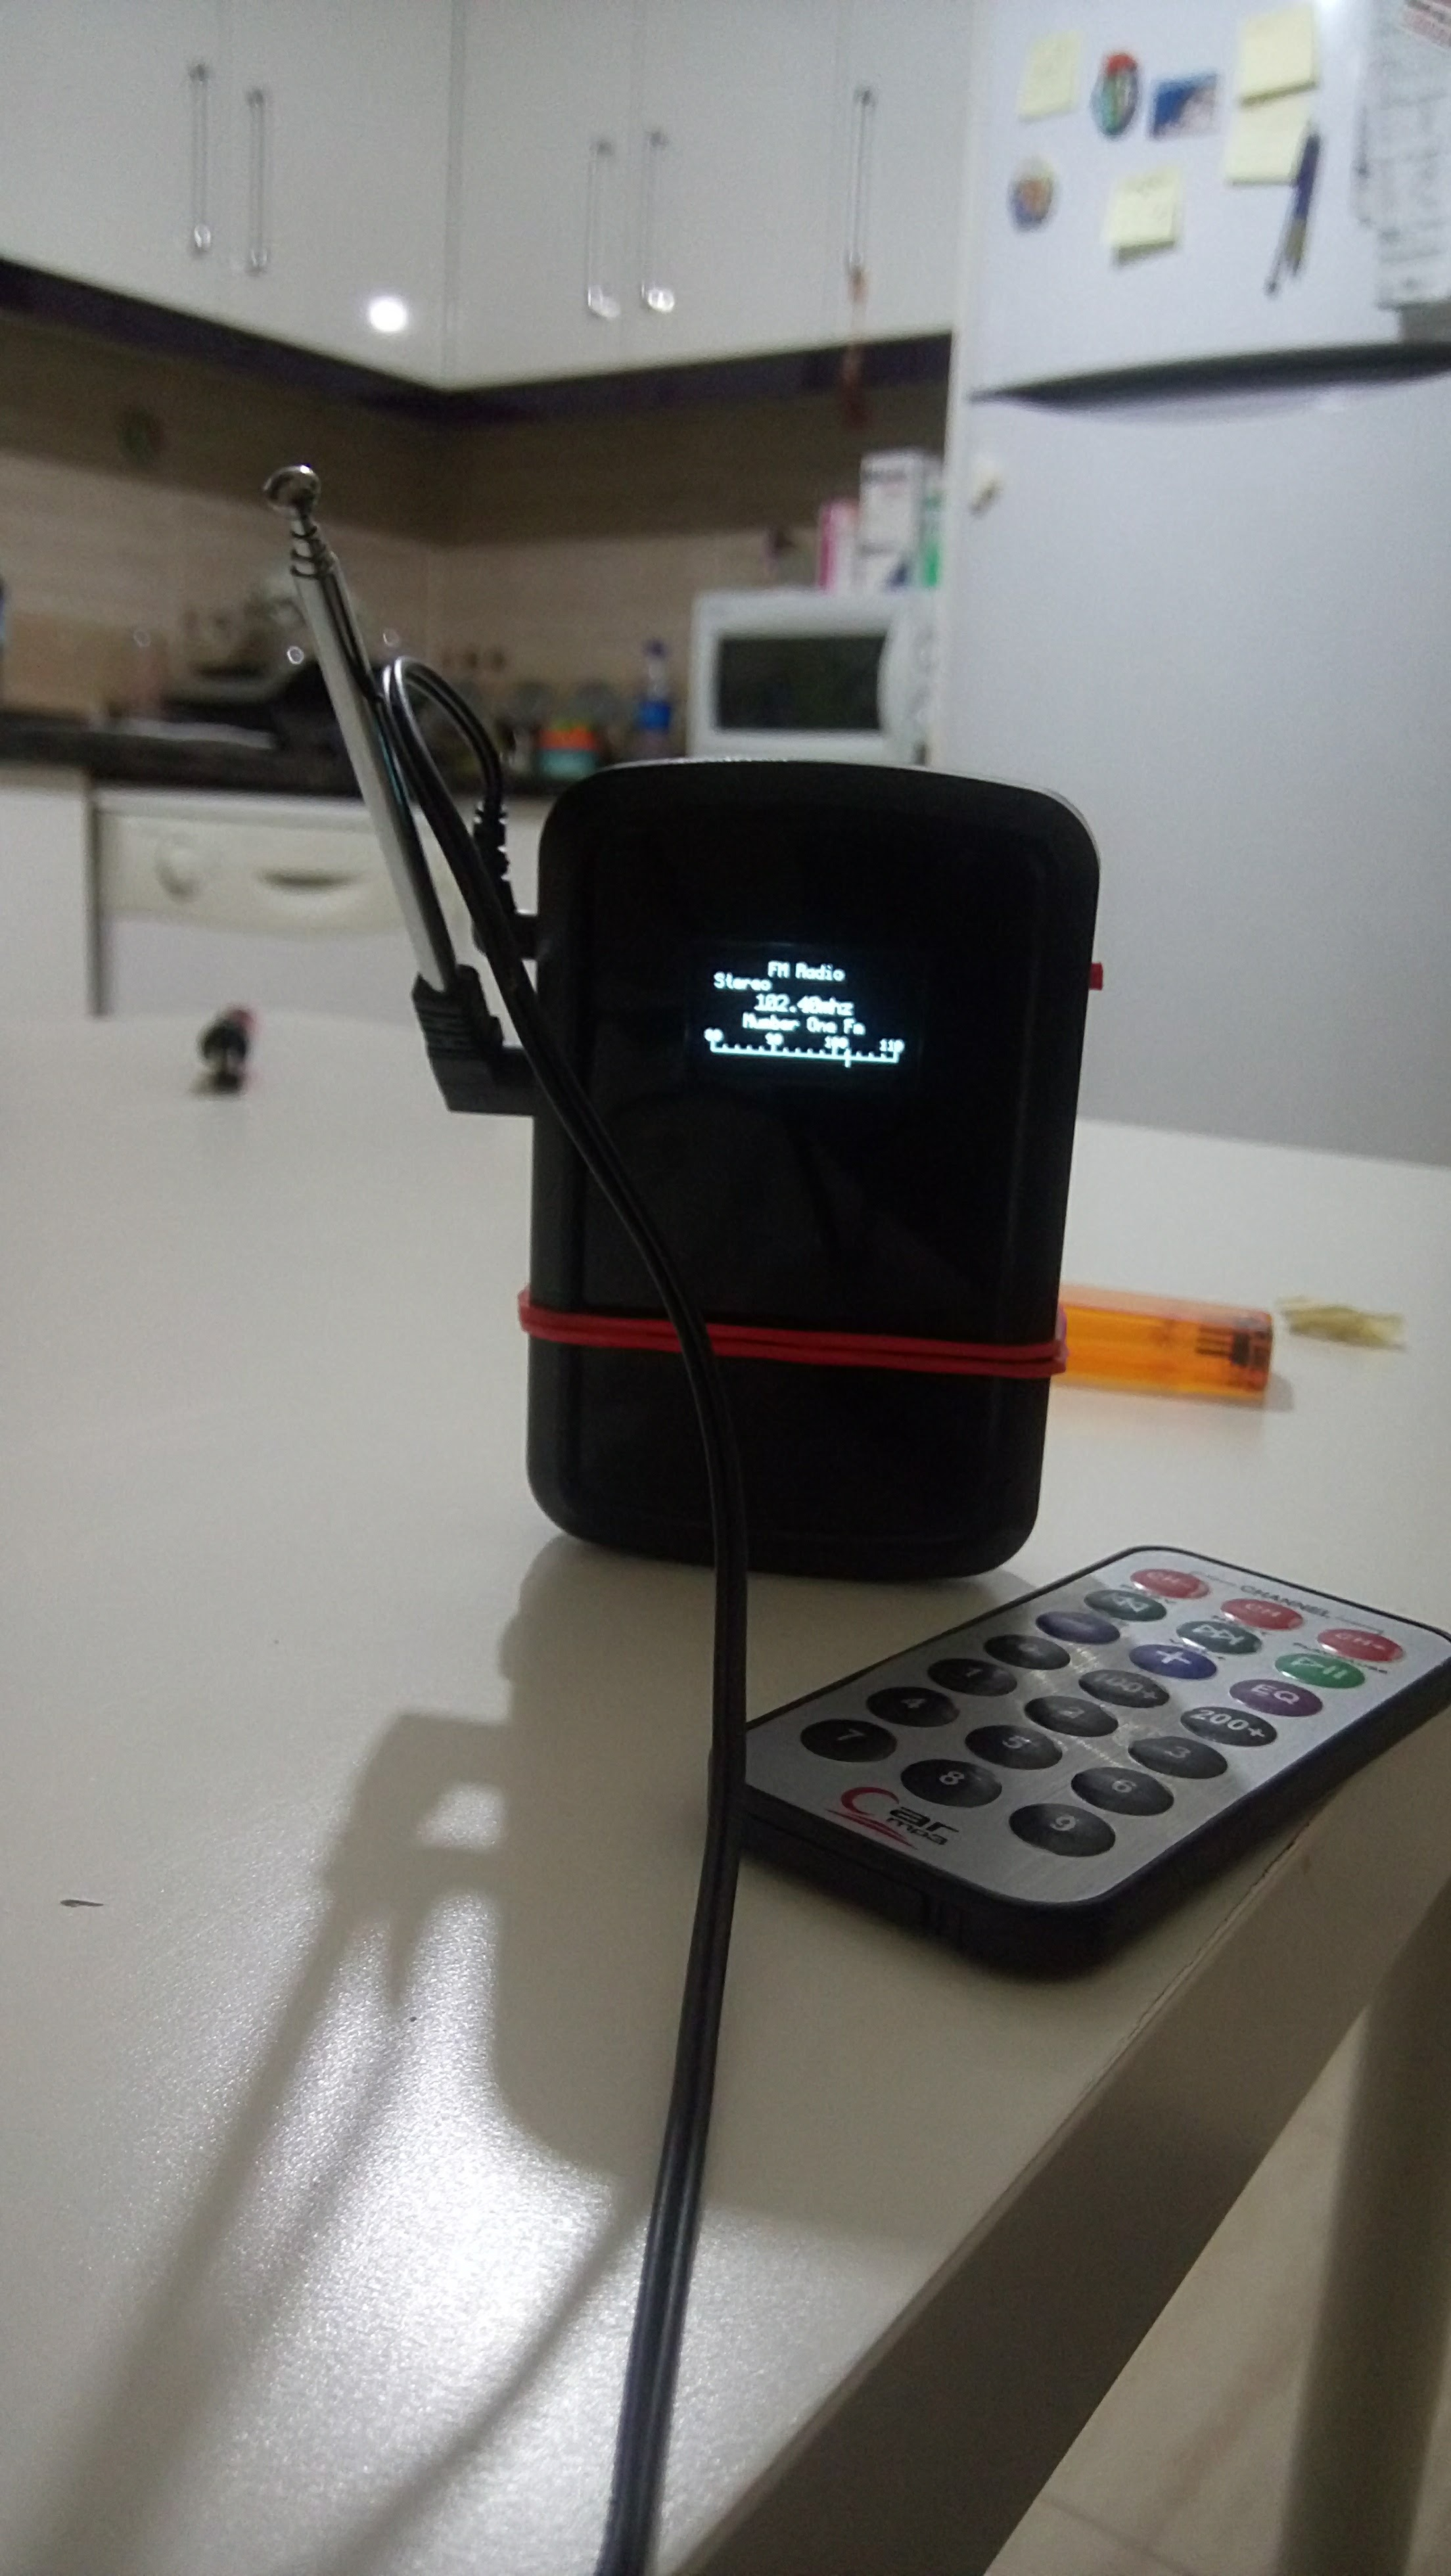 Picture of Diy Arduino Tea5767 Pocket Radio With Remote Control and Rechargeable